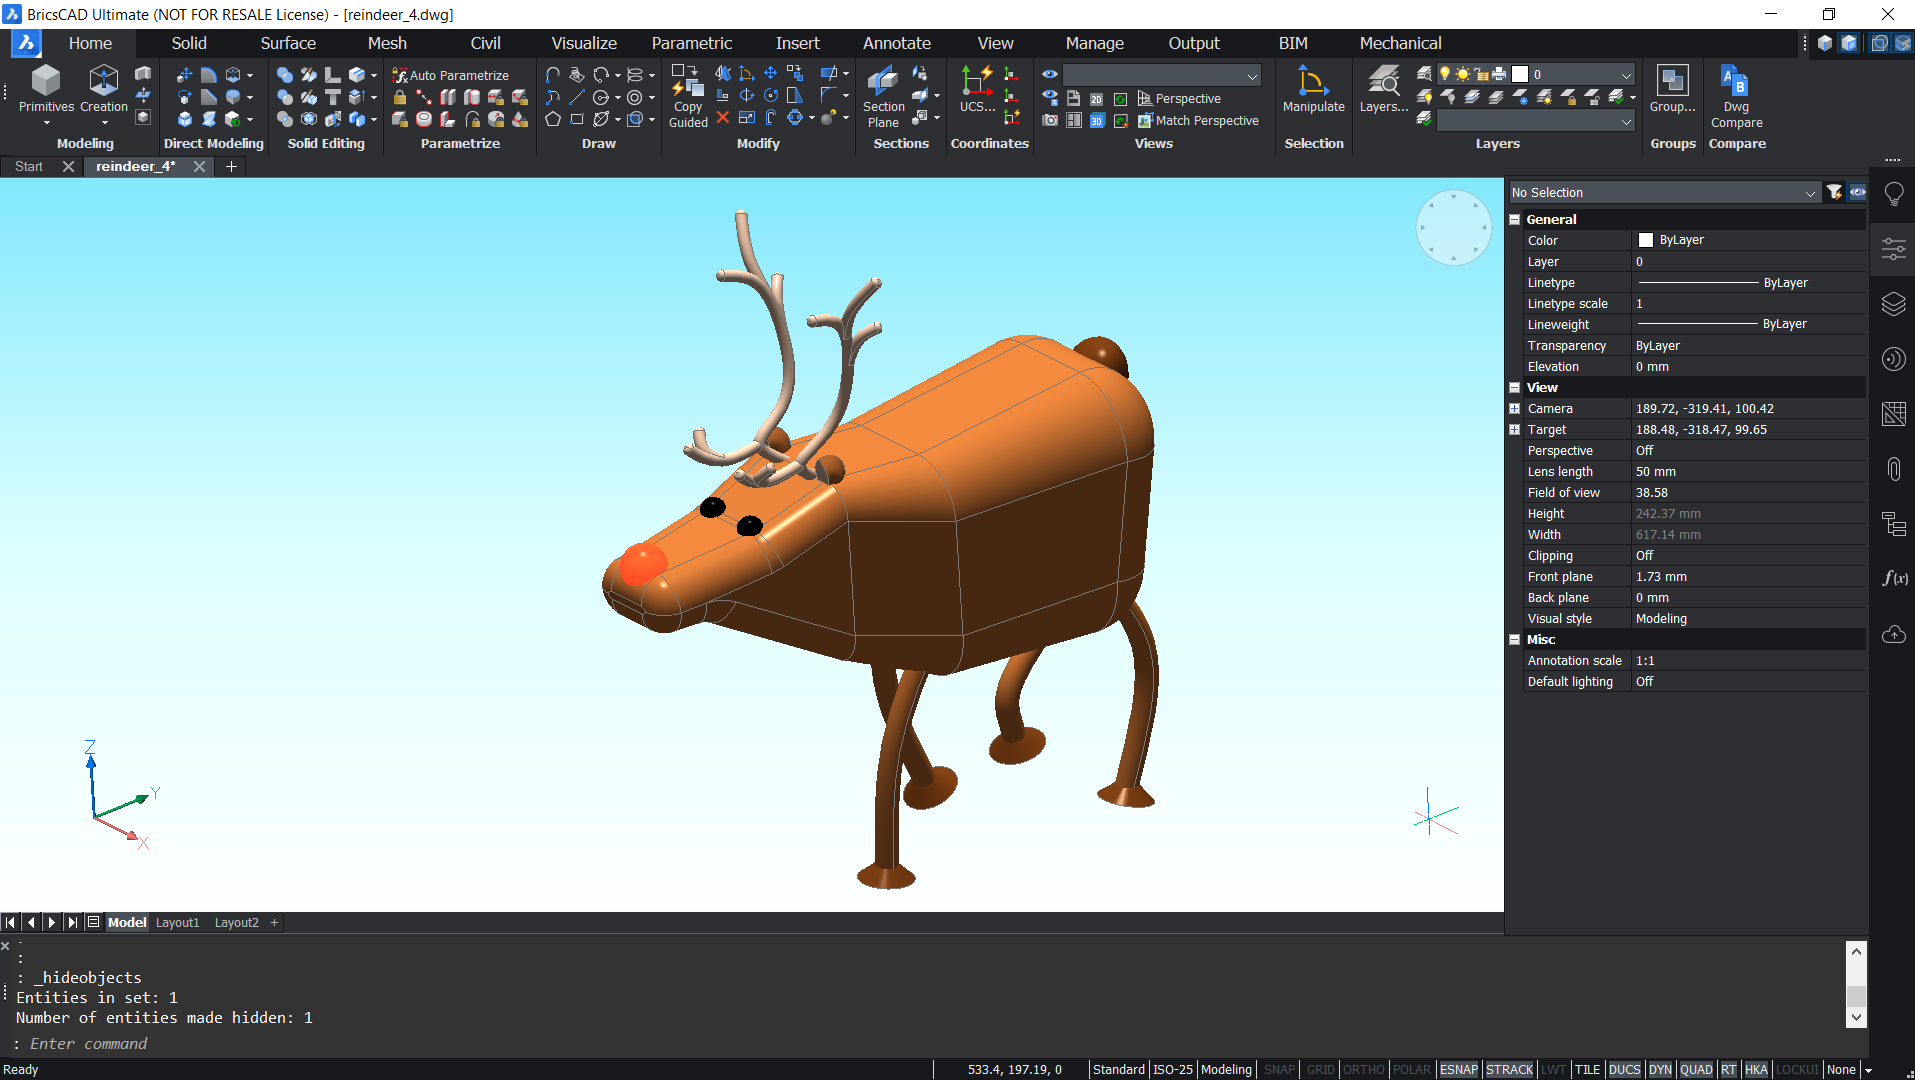 Christmas build challenge BricsCAD